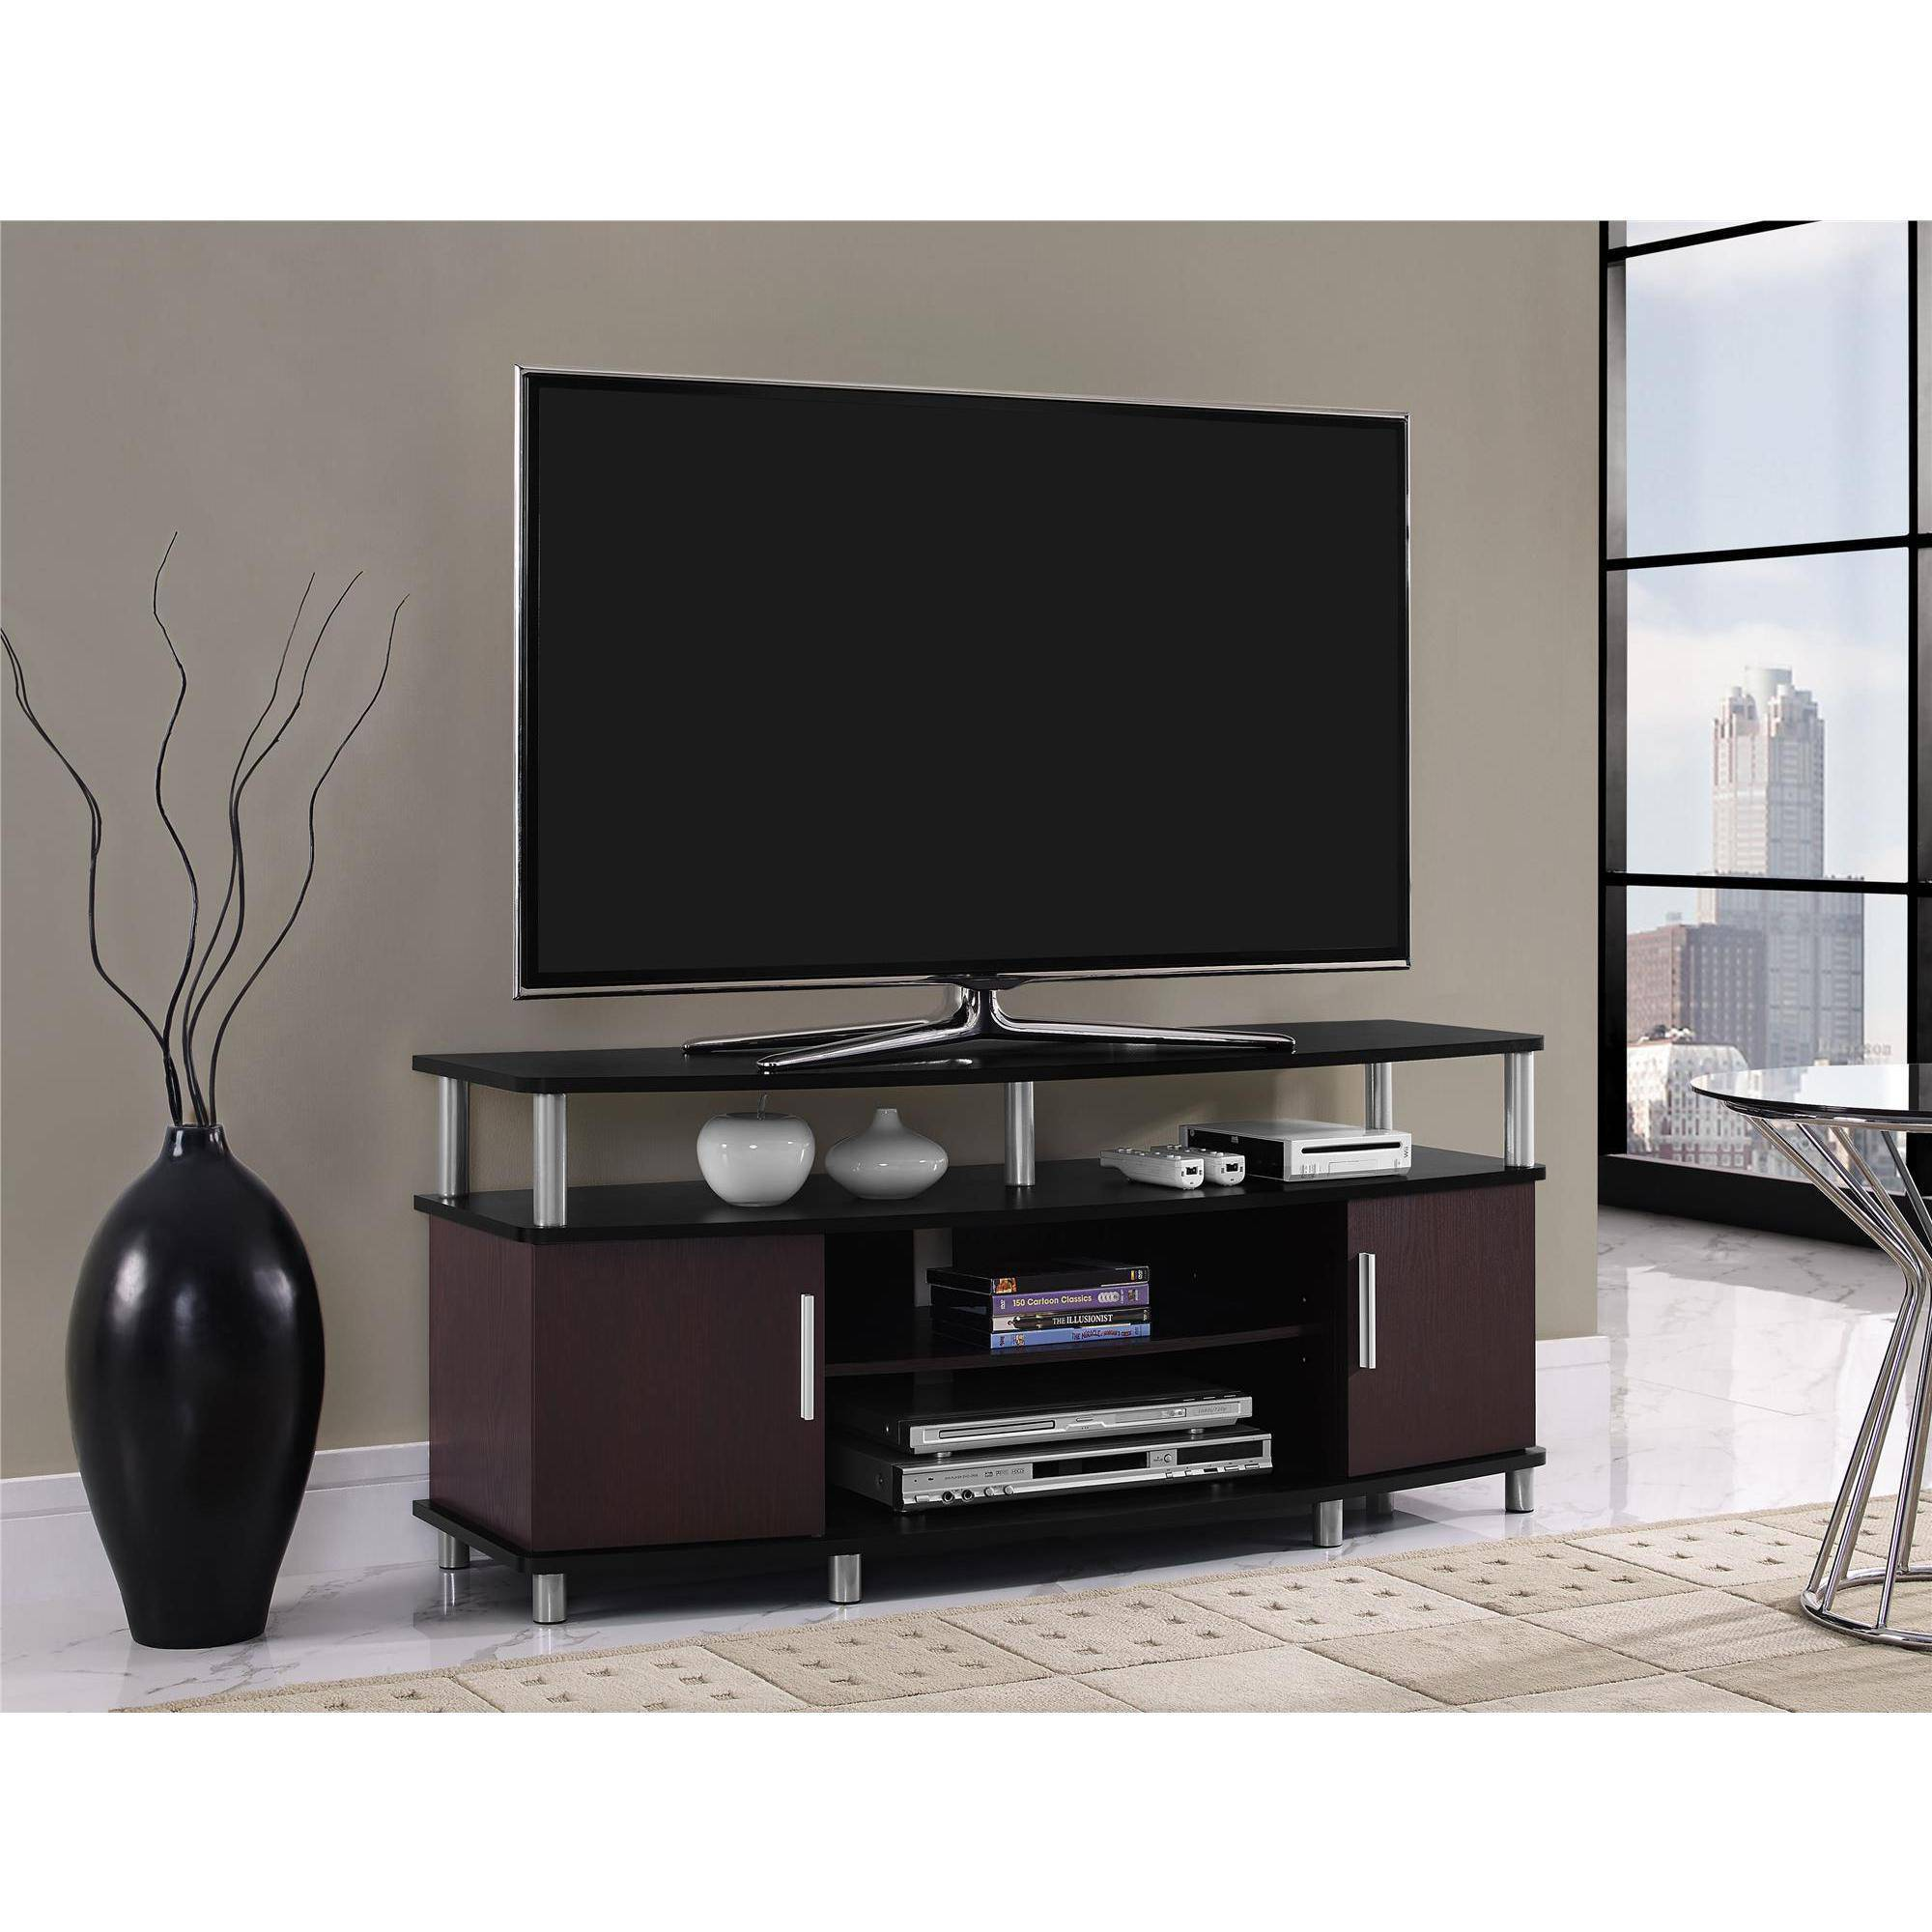 TV Stands  Entertainment Centers Walmartcom - Home tv stand furniture designs